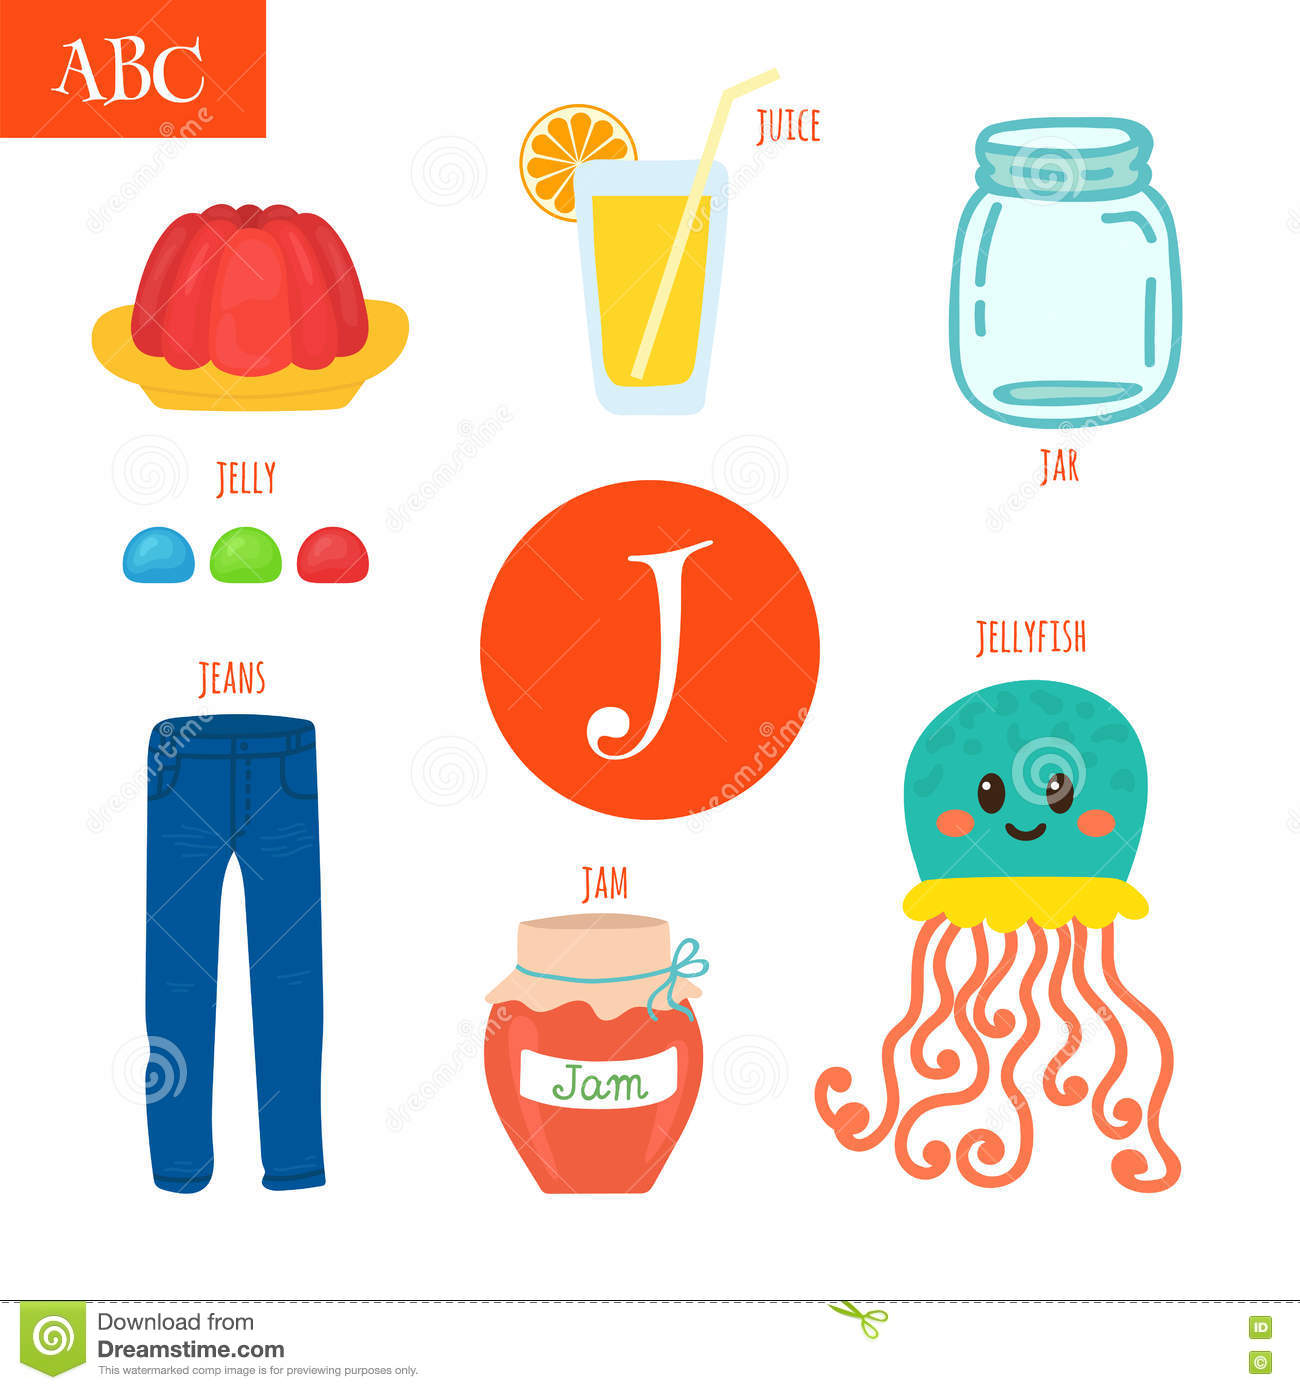 Letter J Cartoon Alphabet For Children Jellyfish Jelly